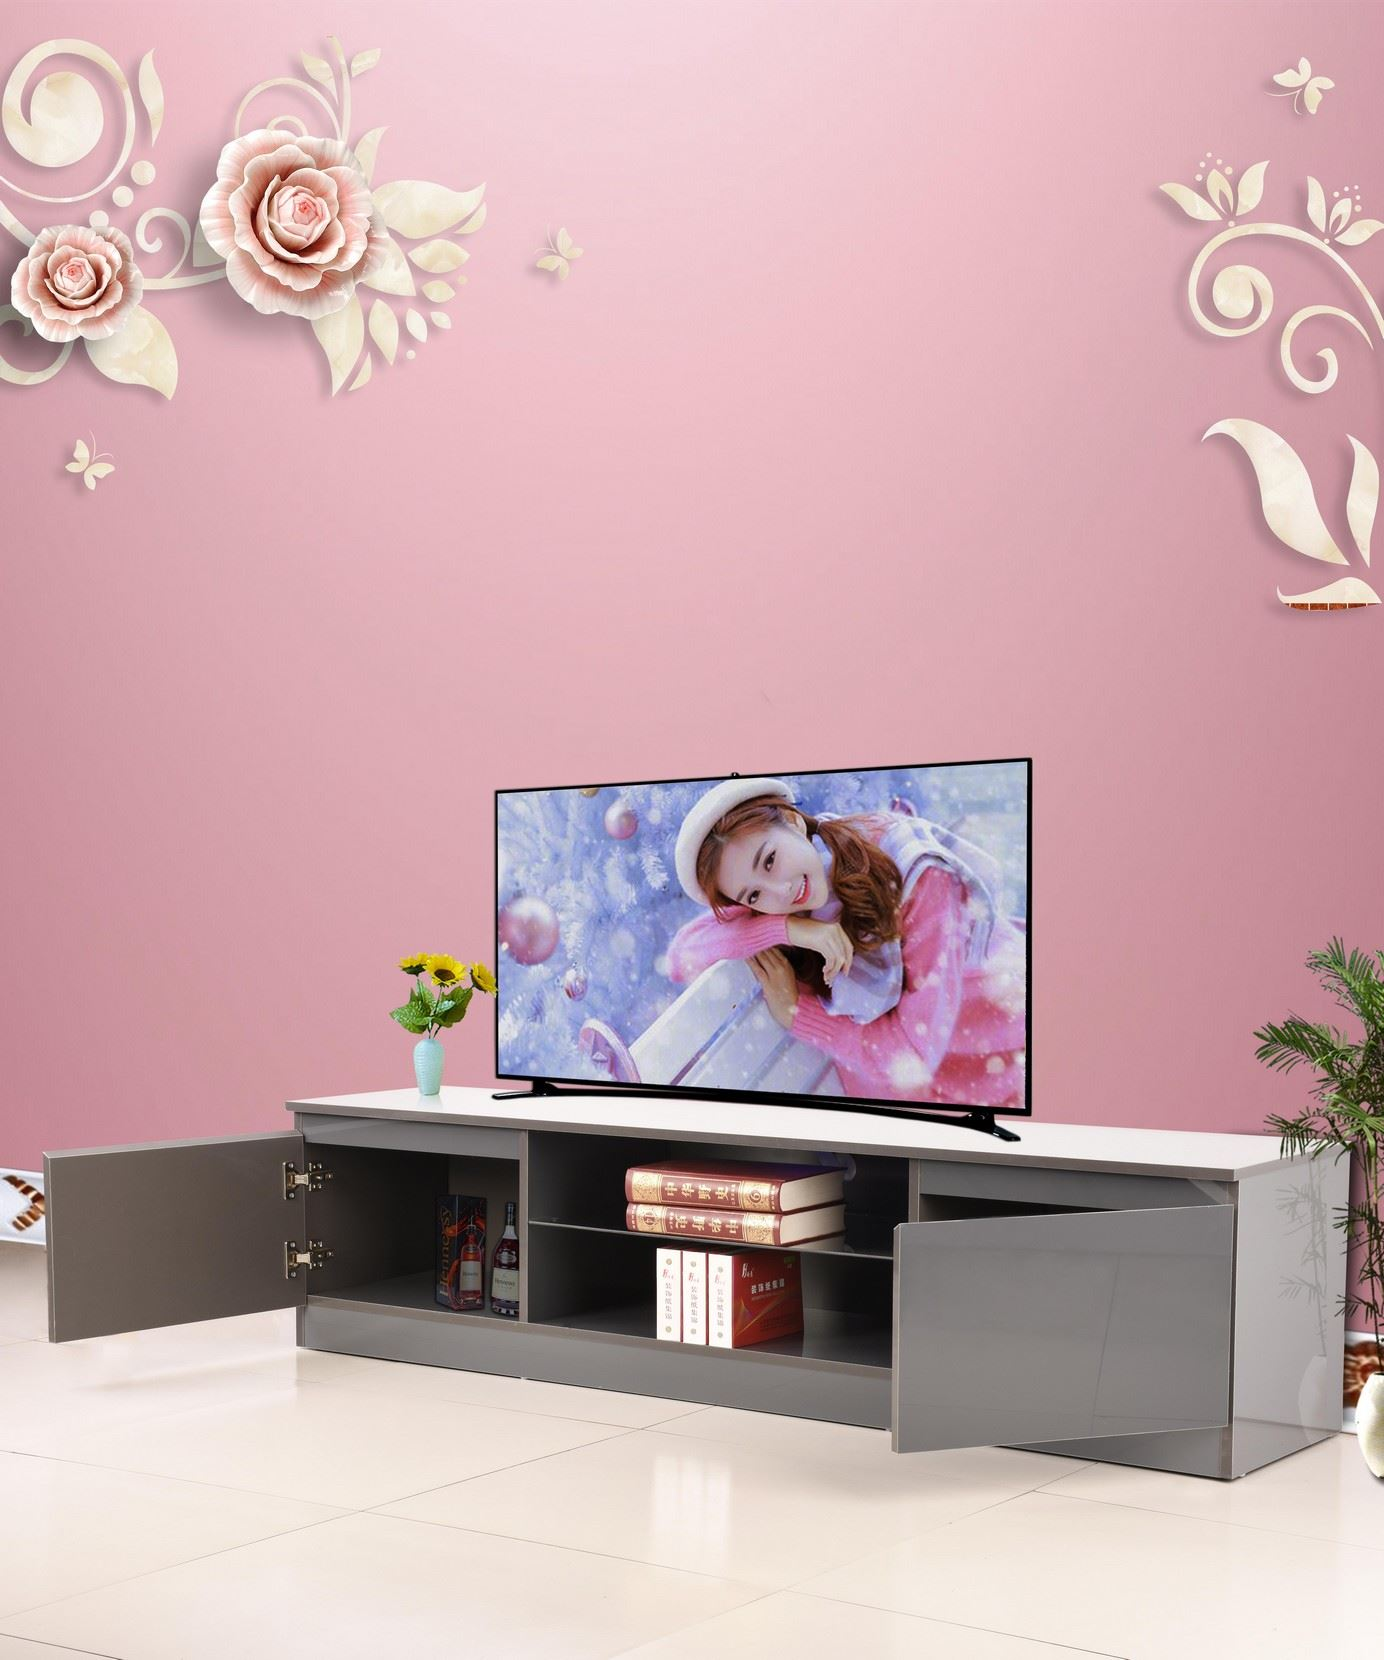 Tv Sideboard Modern Modern Tv Cabinet White 160cm Stand Unit Furniture High ...